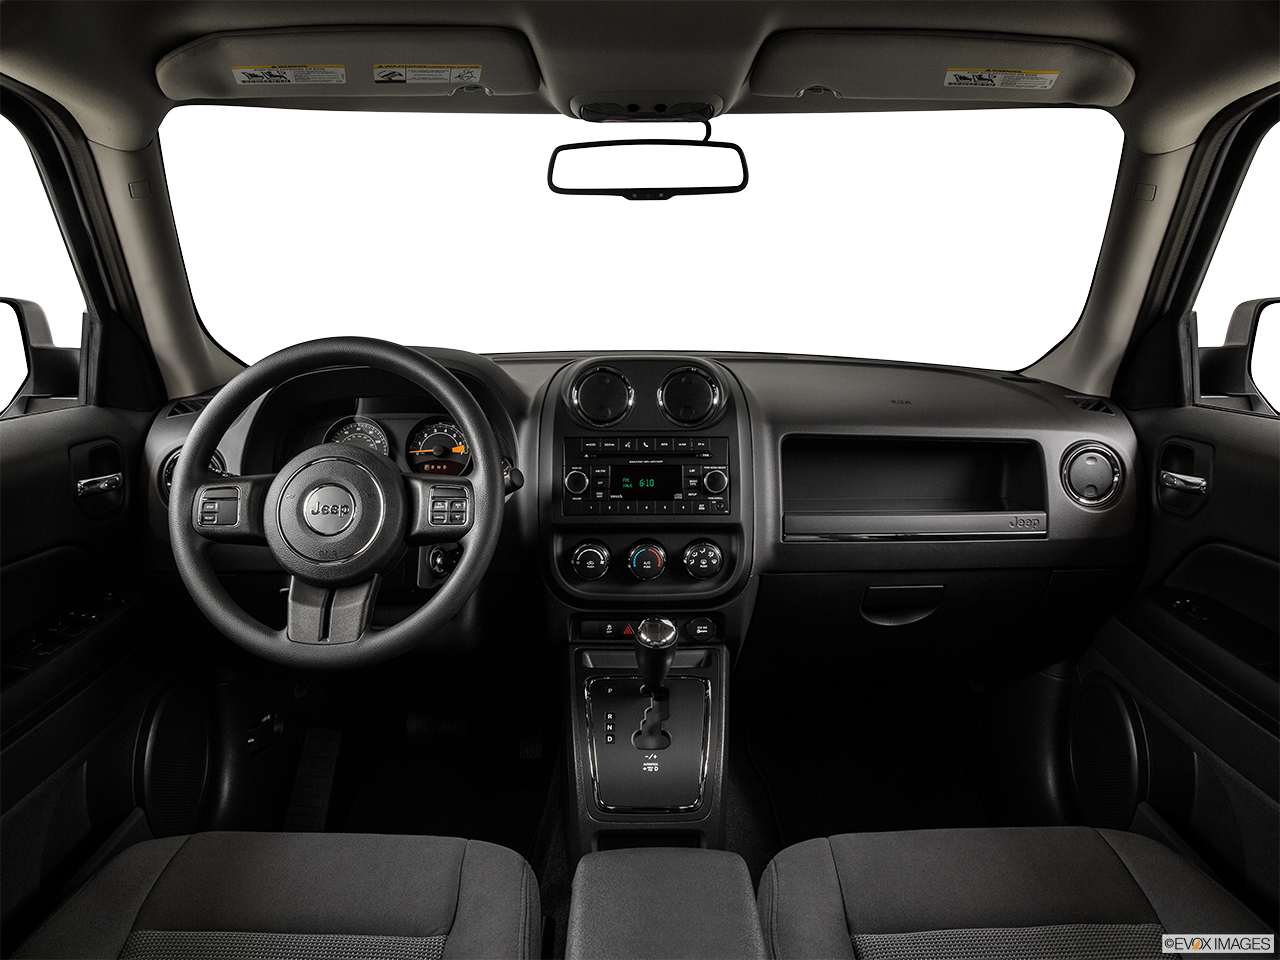 jeep patriot 2015 images #12